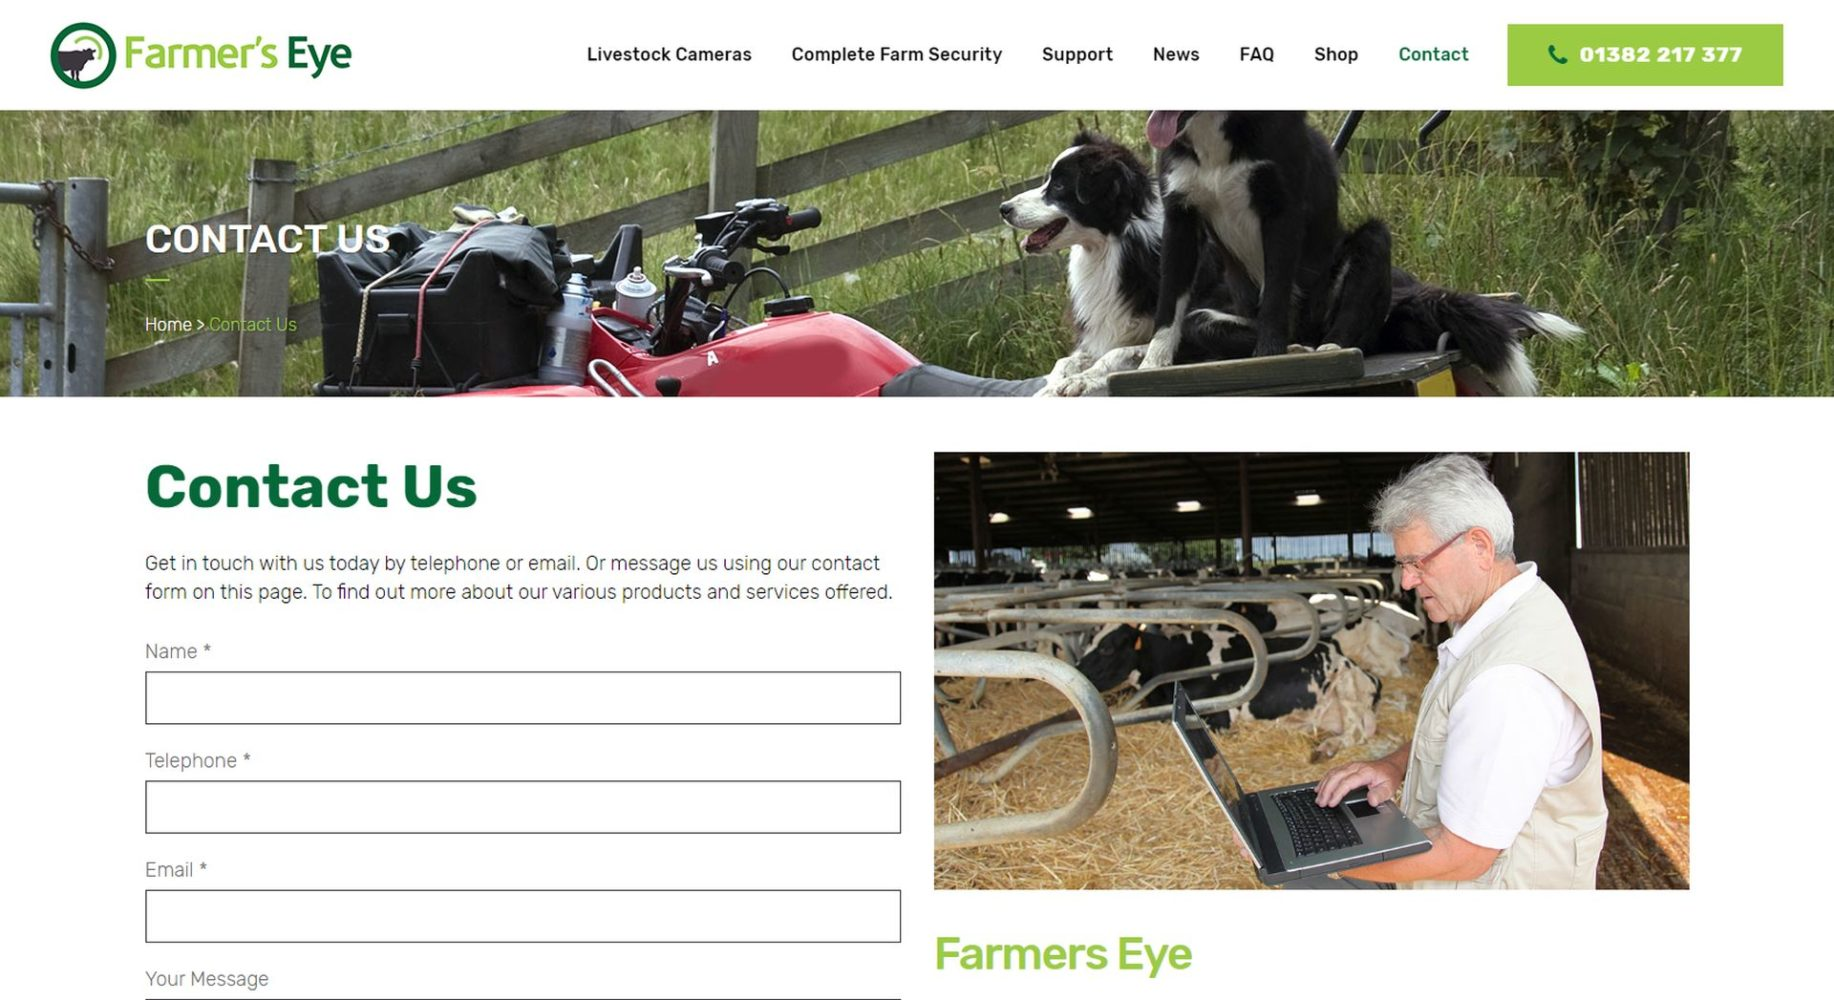 Farmers Eye Contact Page